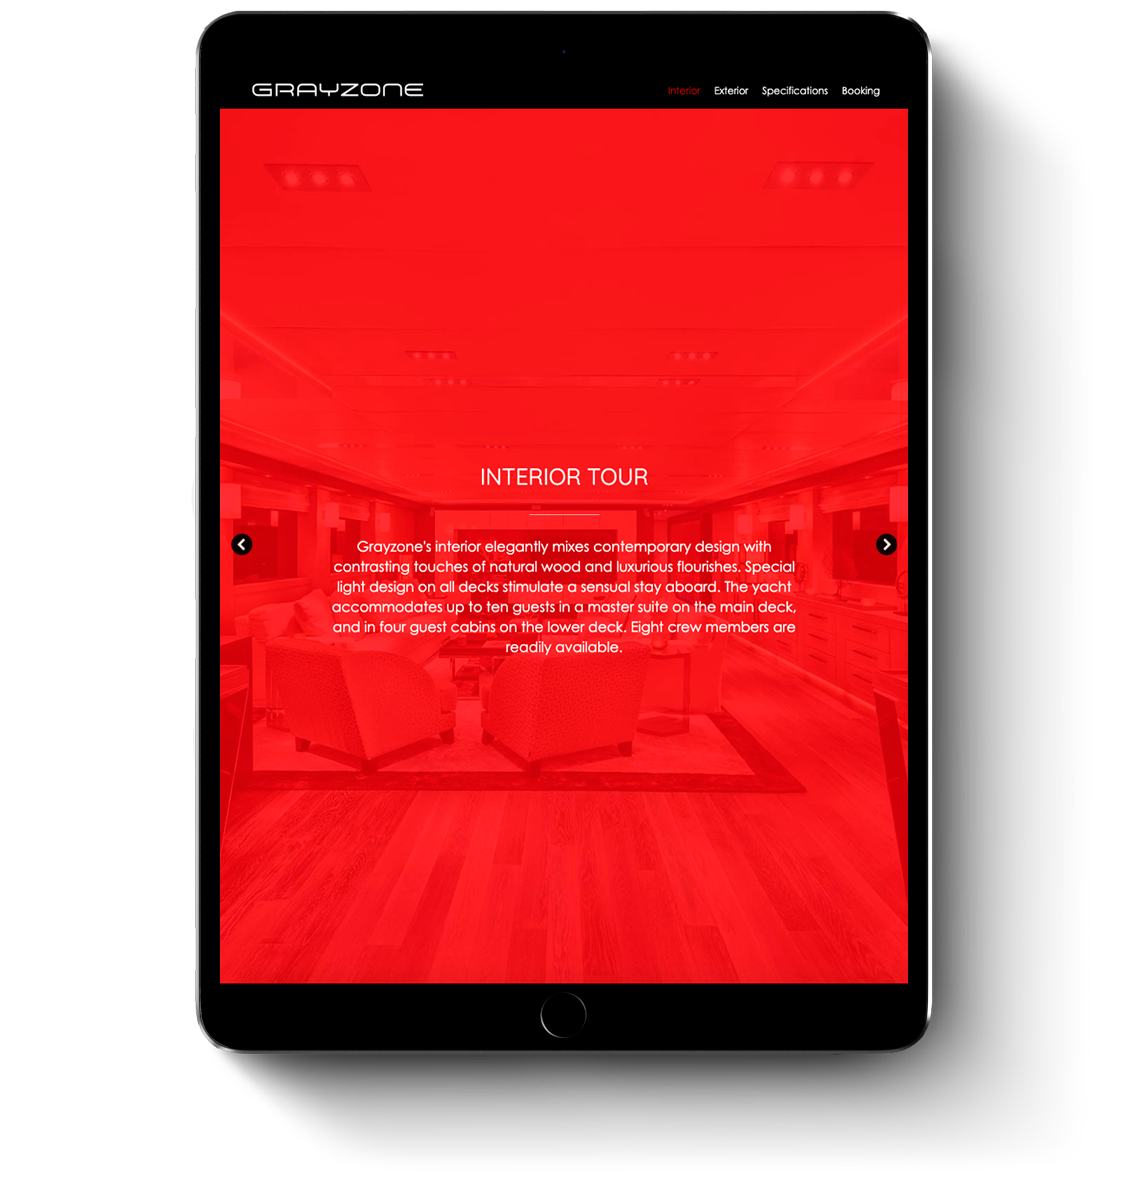 Grayzone super yacht web design for mobile devices and tablets